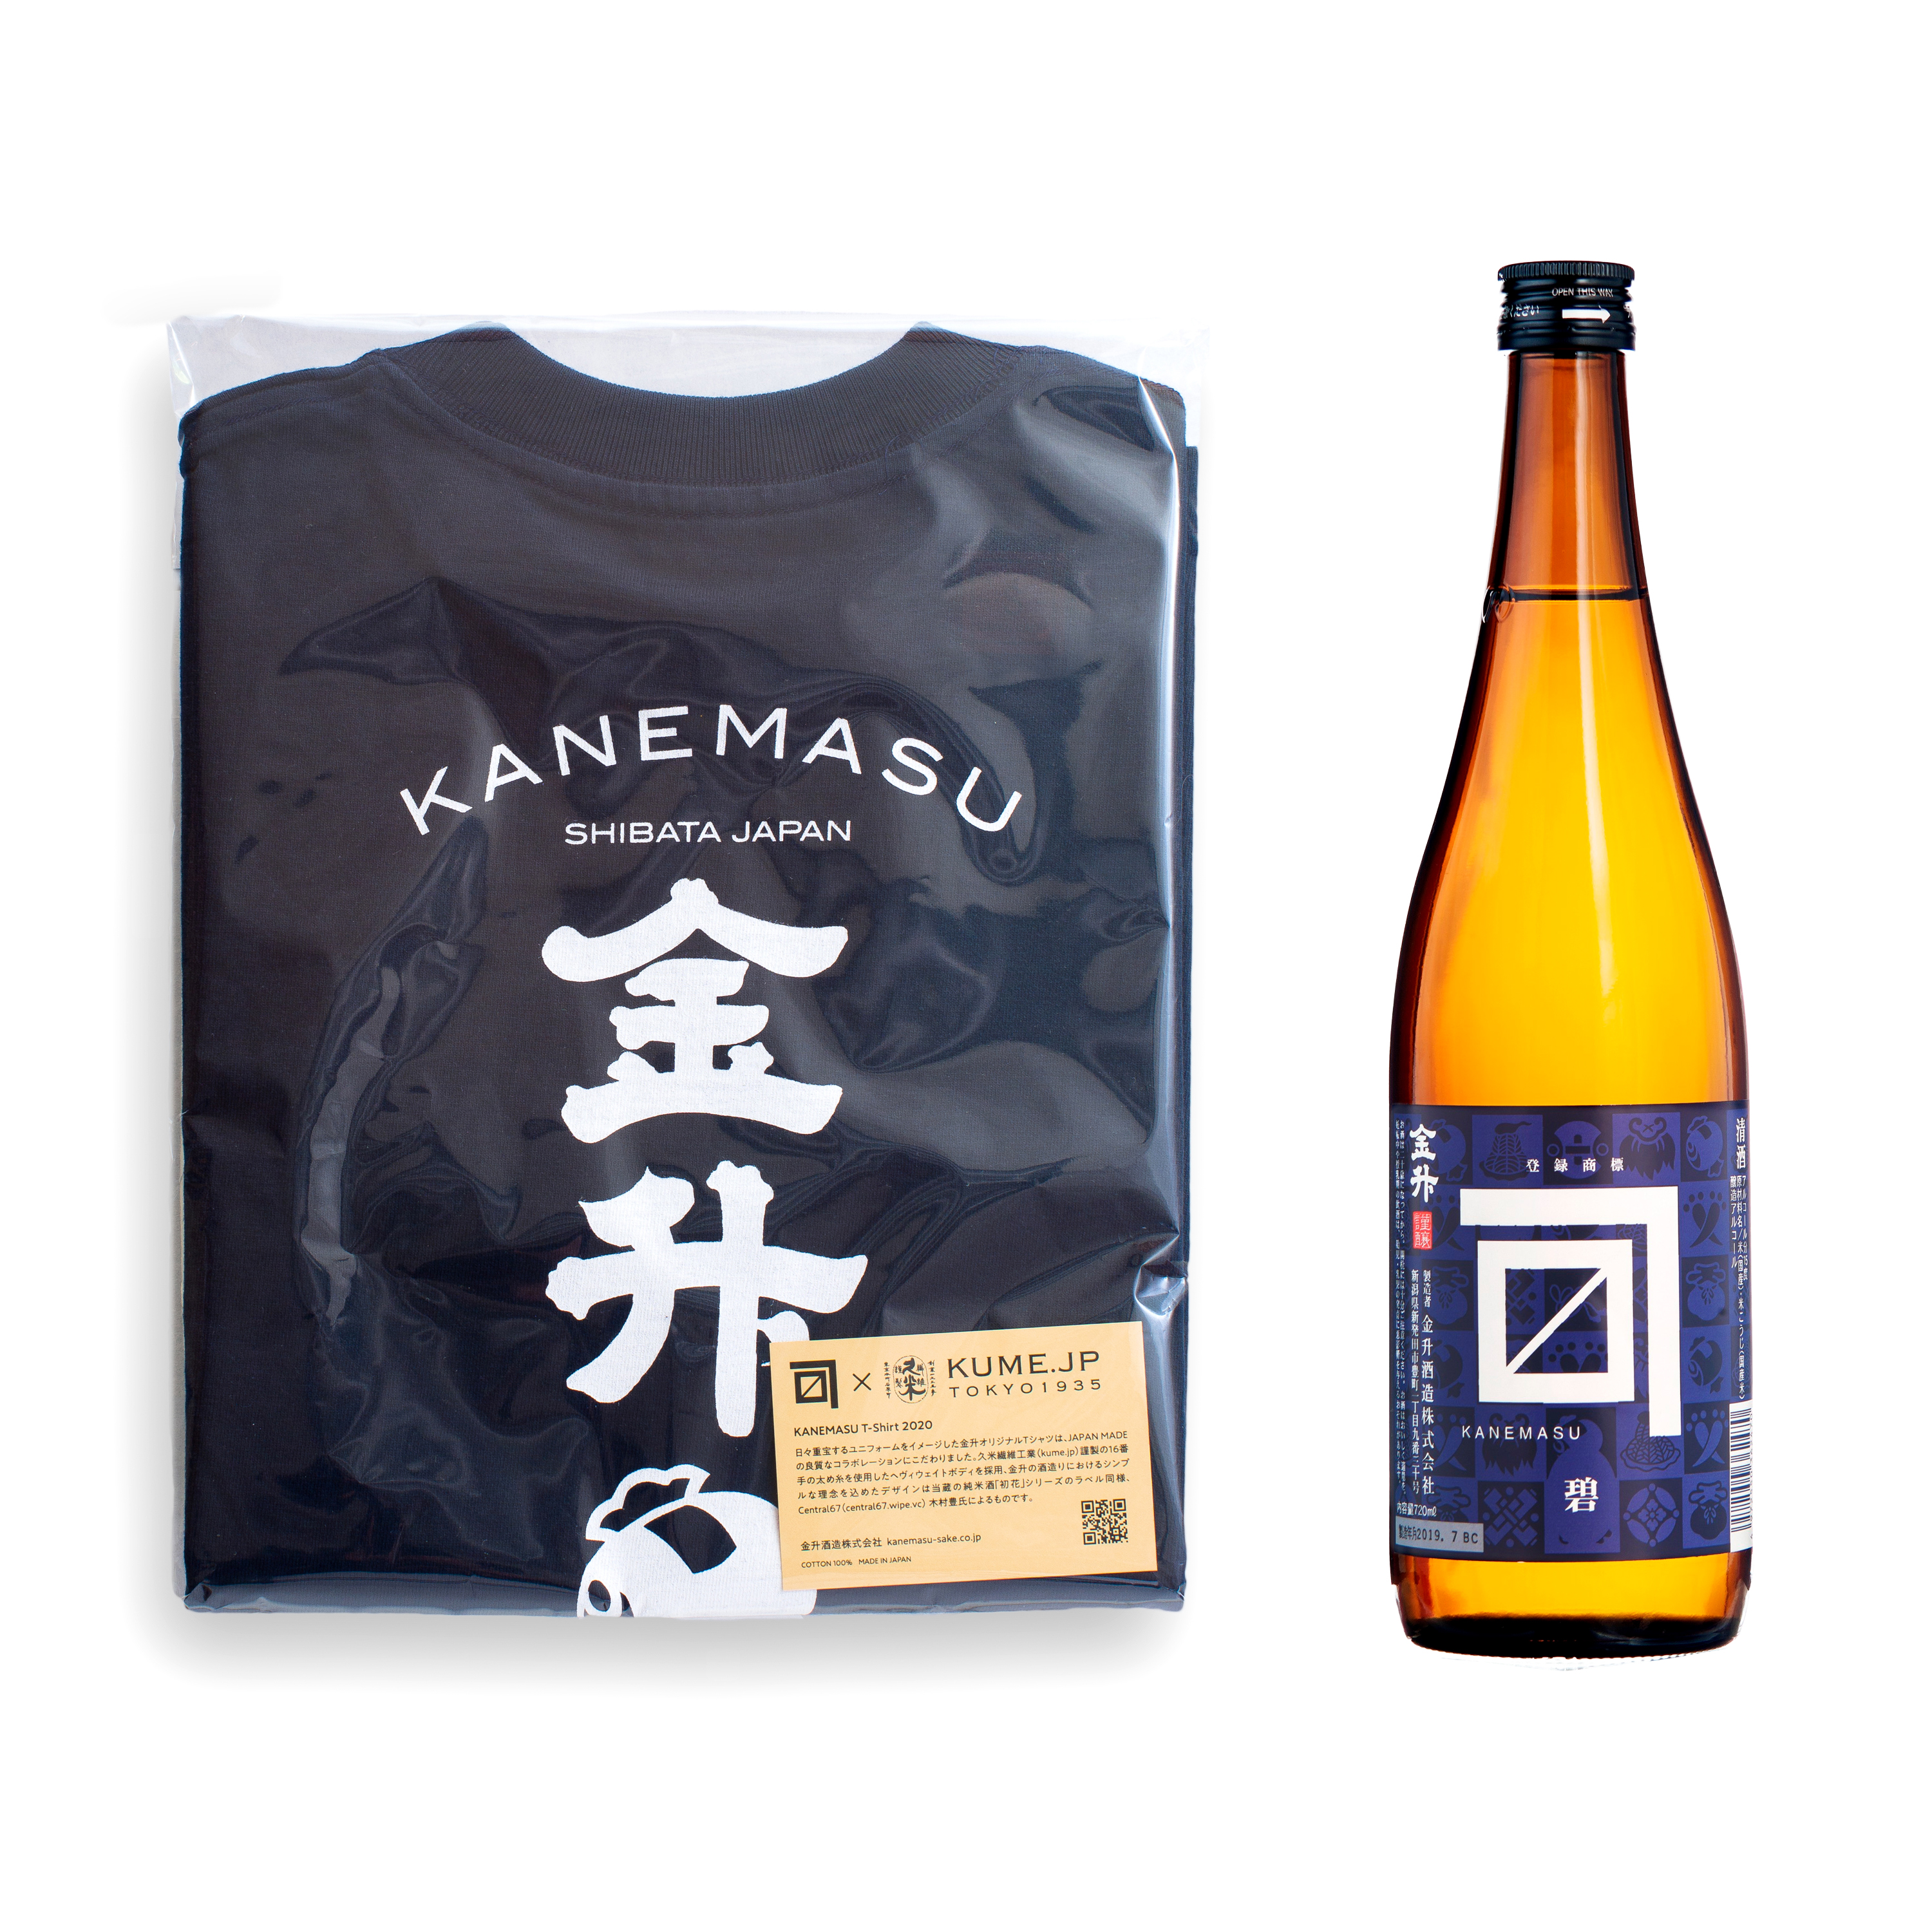 KANEMASU T-Shirt 2020 NAVY